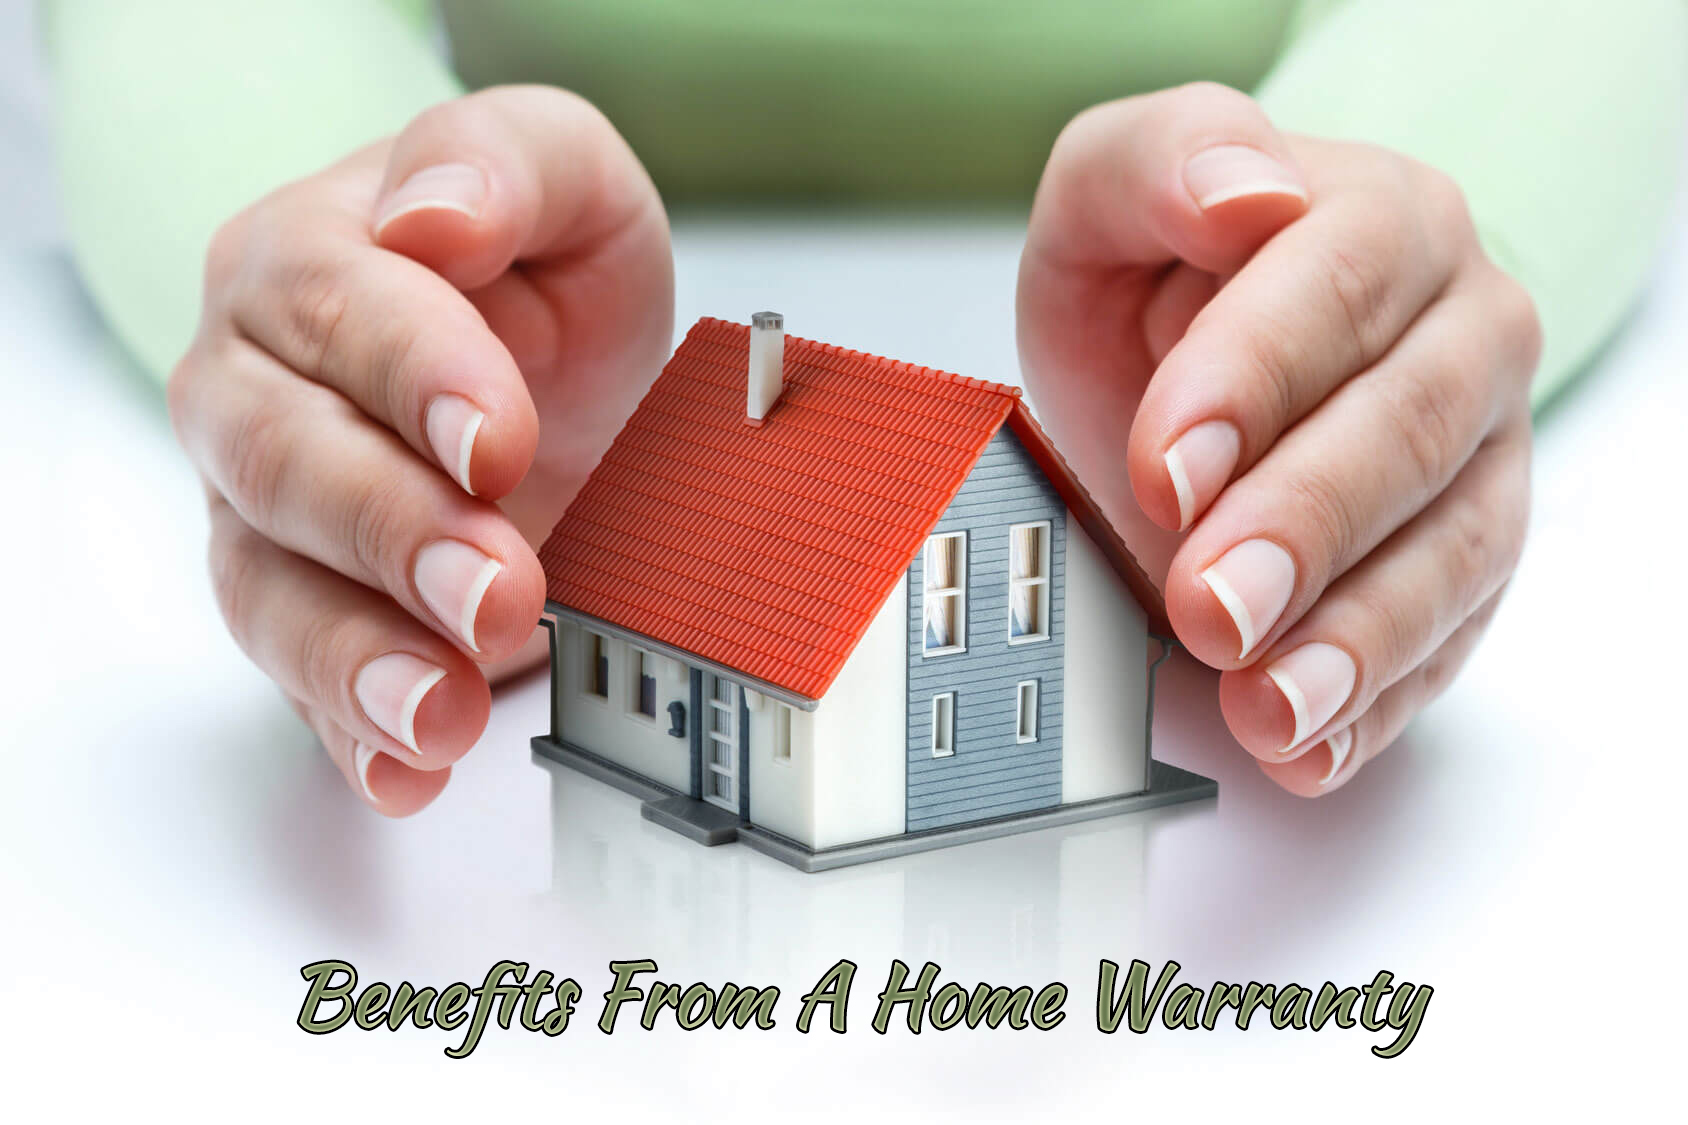 Benefits From A Home Warranty